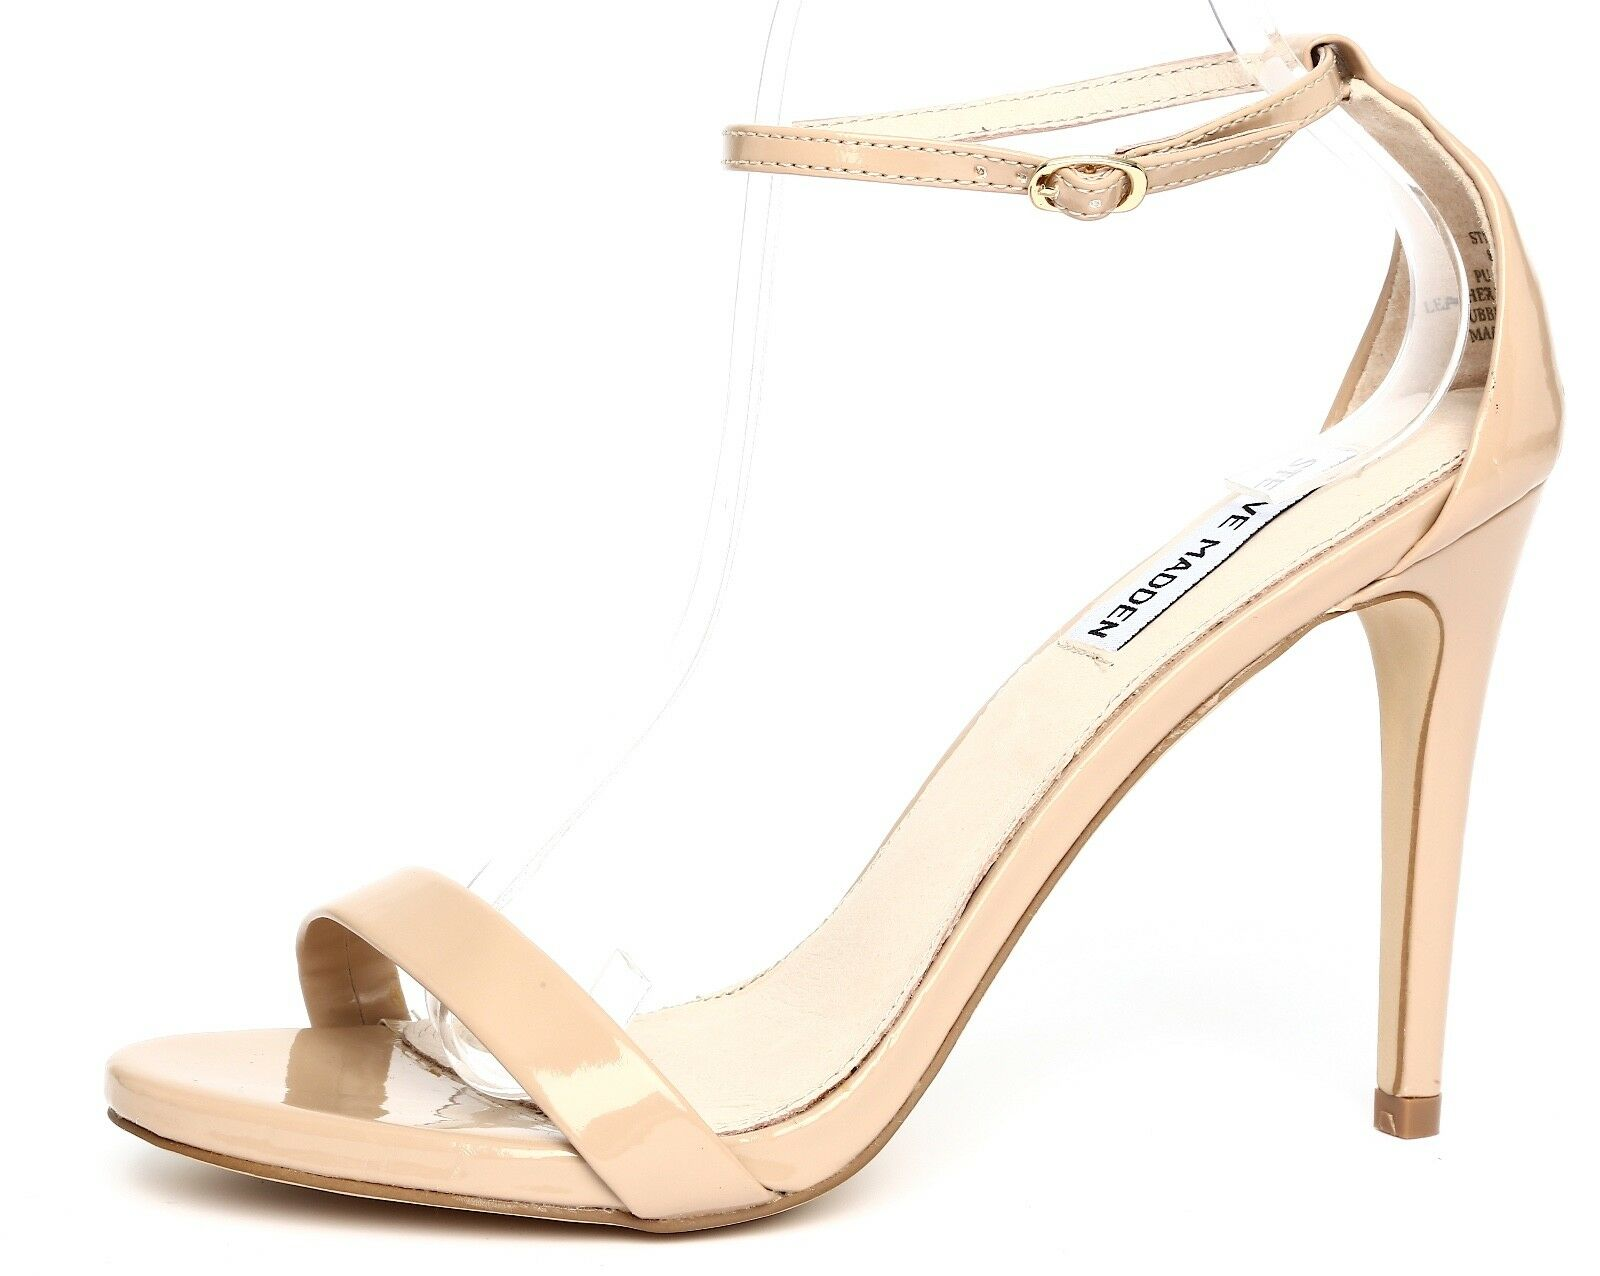 Steve Madden Stecy Patent Leather Nude Ankle Strap Sandal Heels Sz 8.5M 1013